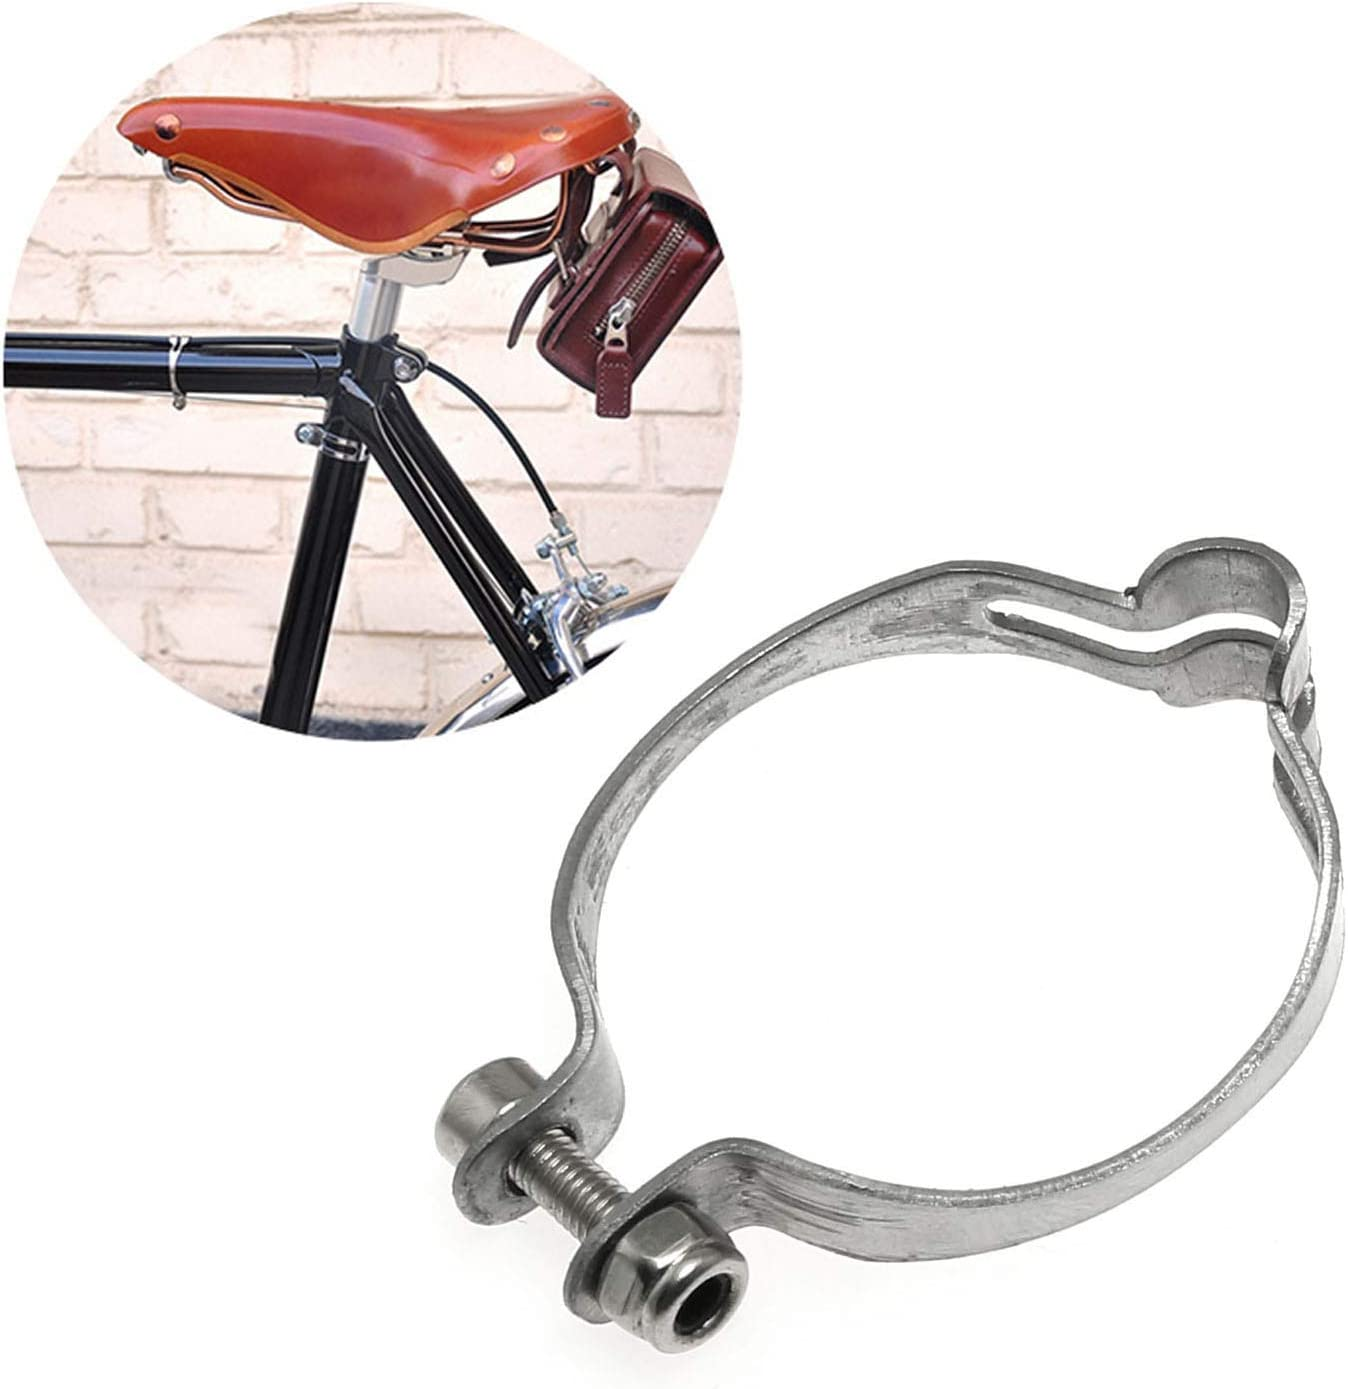 Maxmoral 4 Sets of 28.6mm Metal Ring to Frame MTB Bike Cable Guide Brake Cable Shift Cable Derailleur Cable Base Guide Clip Fitting Line Tube Seat Clamp